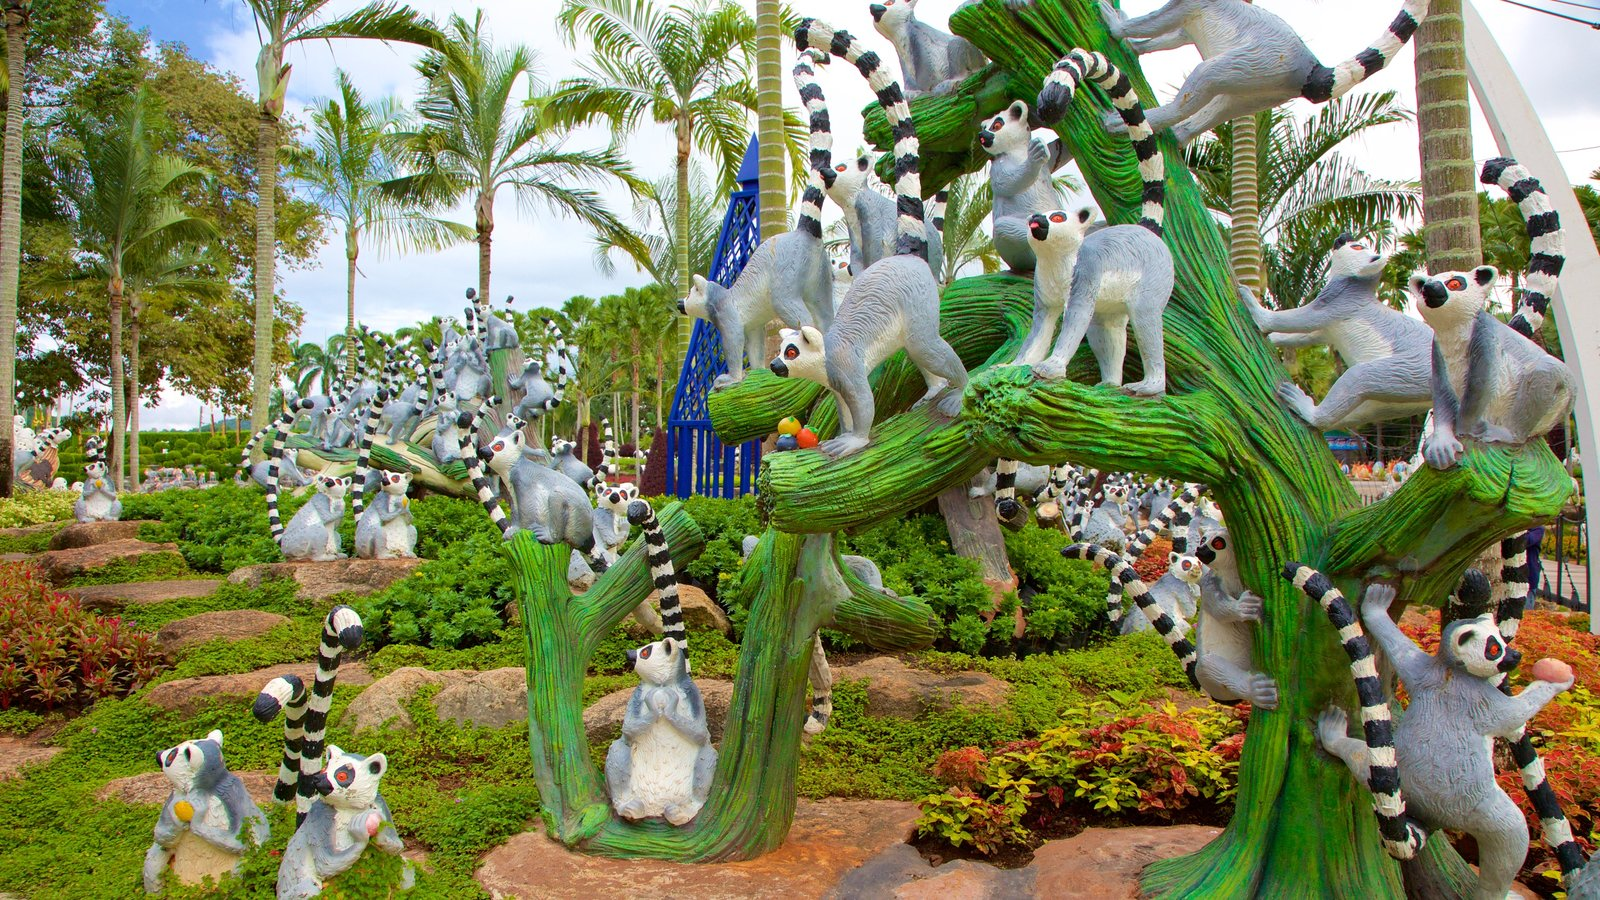 gardens & parks pictures: view images of nong nooch tropical